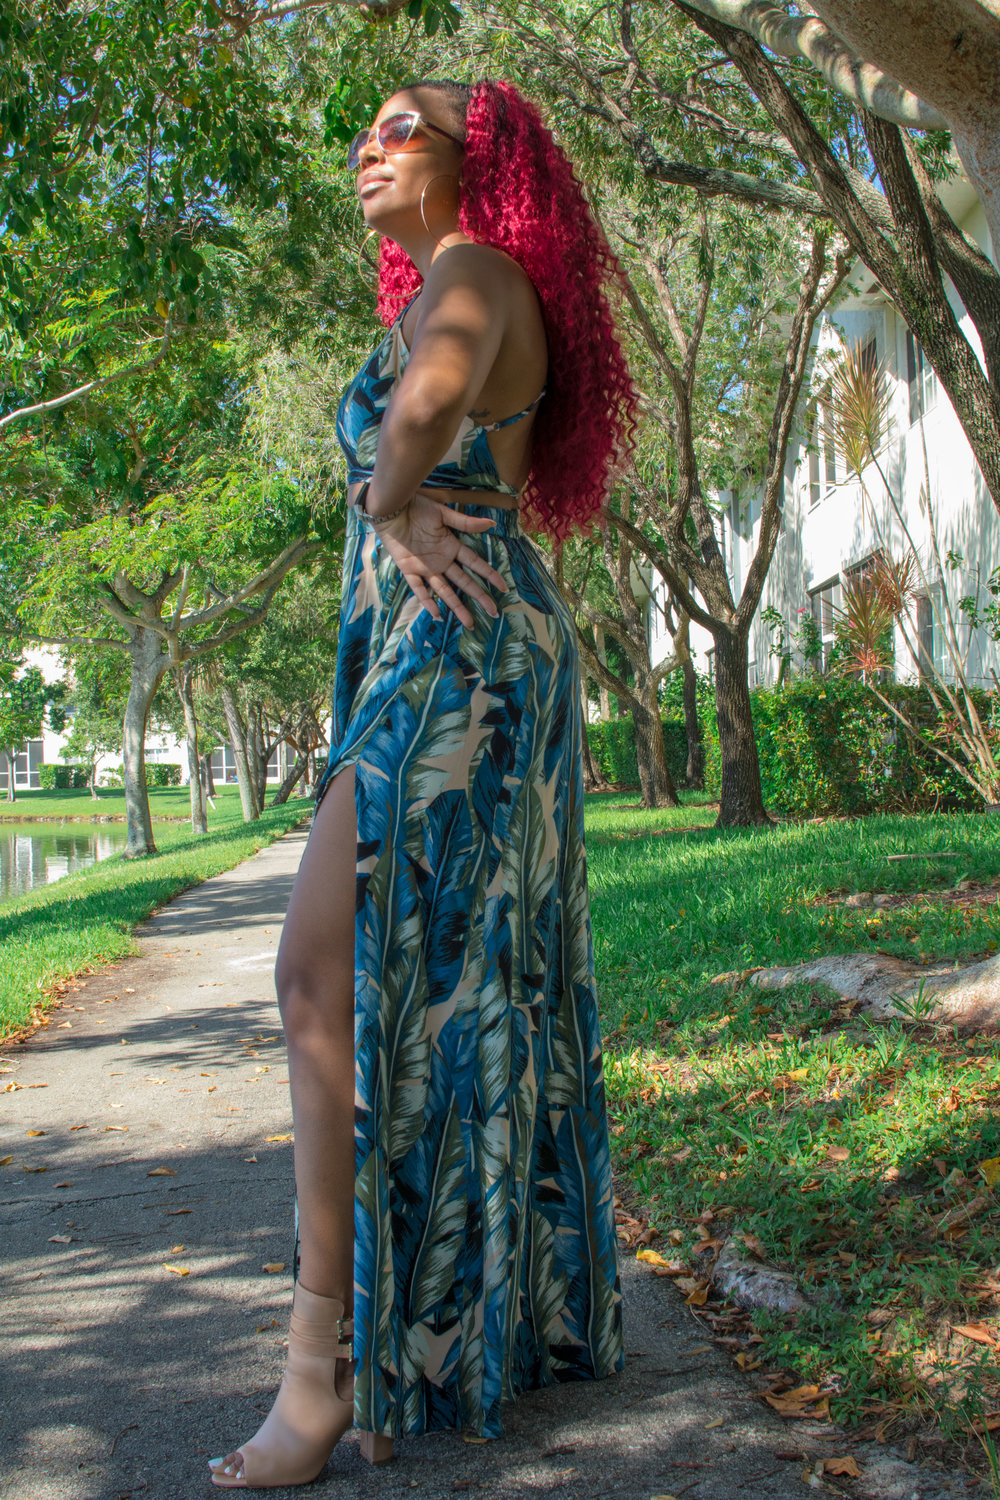 Hair: Freetress Deep twist tt530  Outfit:  Lulus   photo cred: @cinematic_ visuals @rjp_ cinematicvisuals